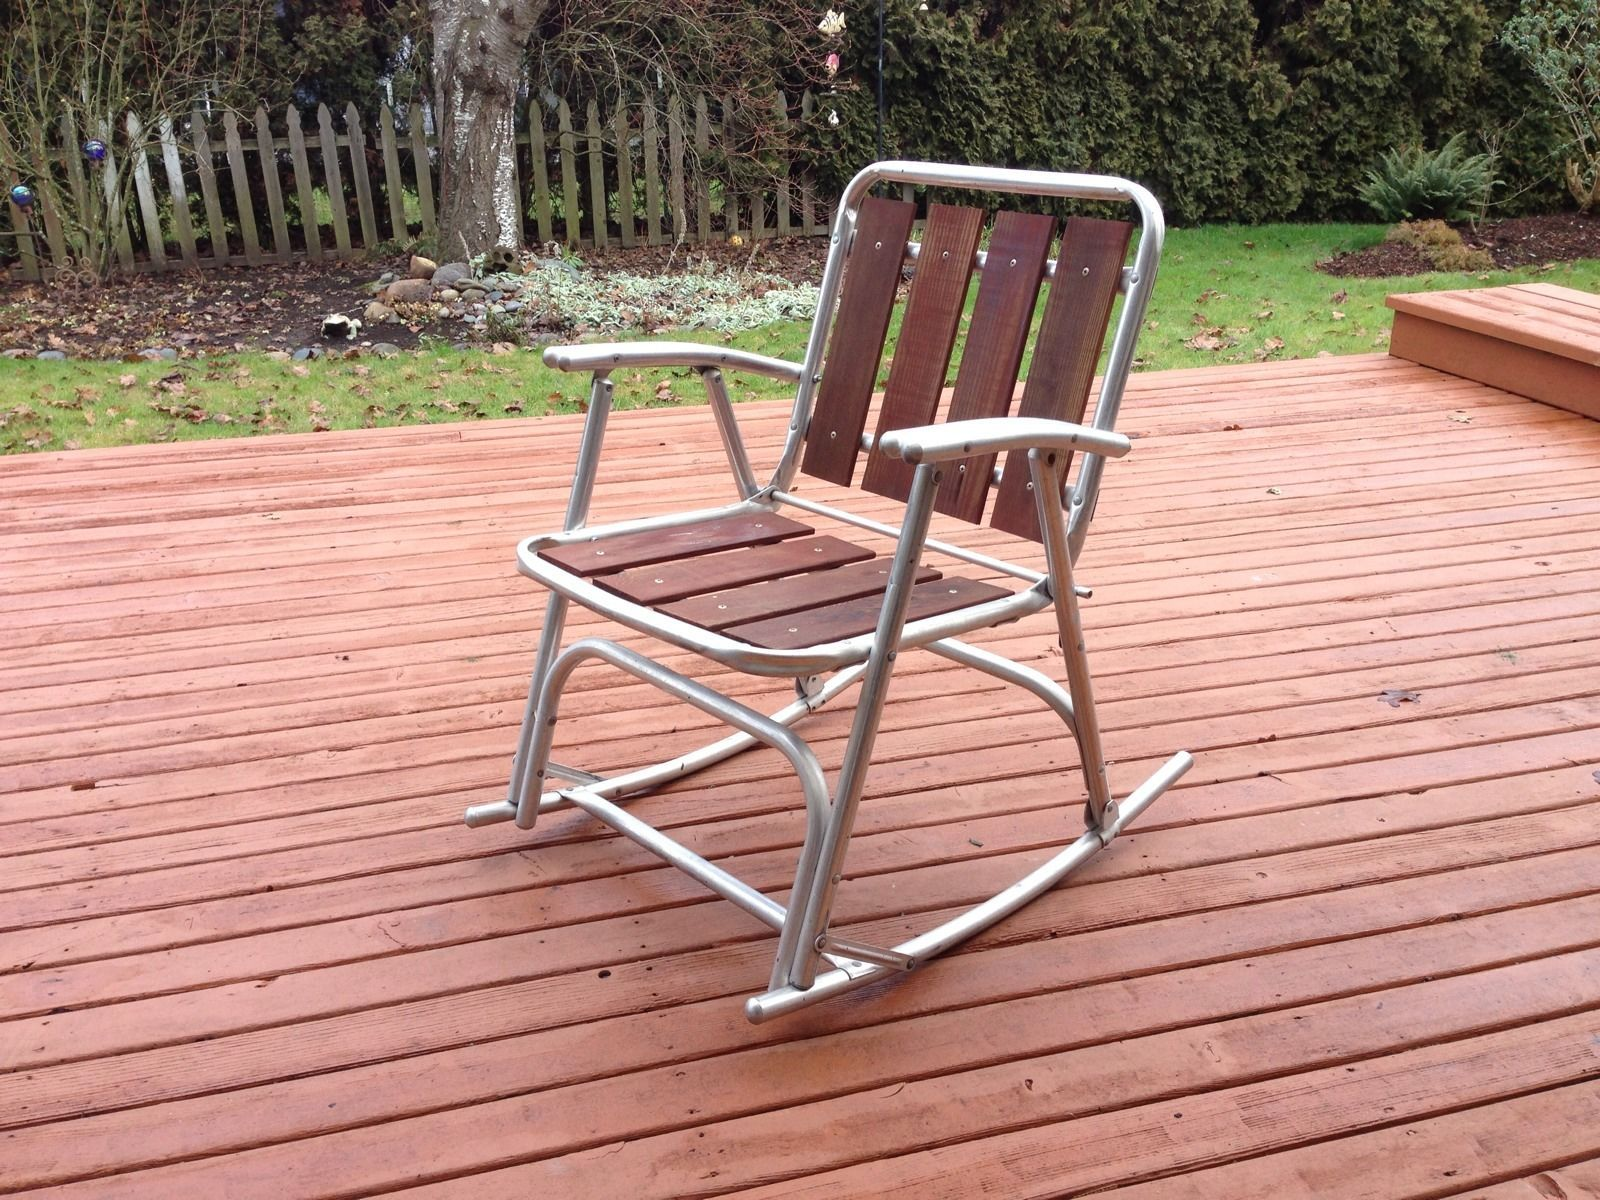 1 VTG Redwood Aluminum Outdoor Patio Porch Lawn Rocking Chairs Folding  Rocker